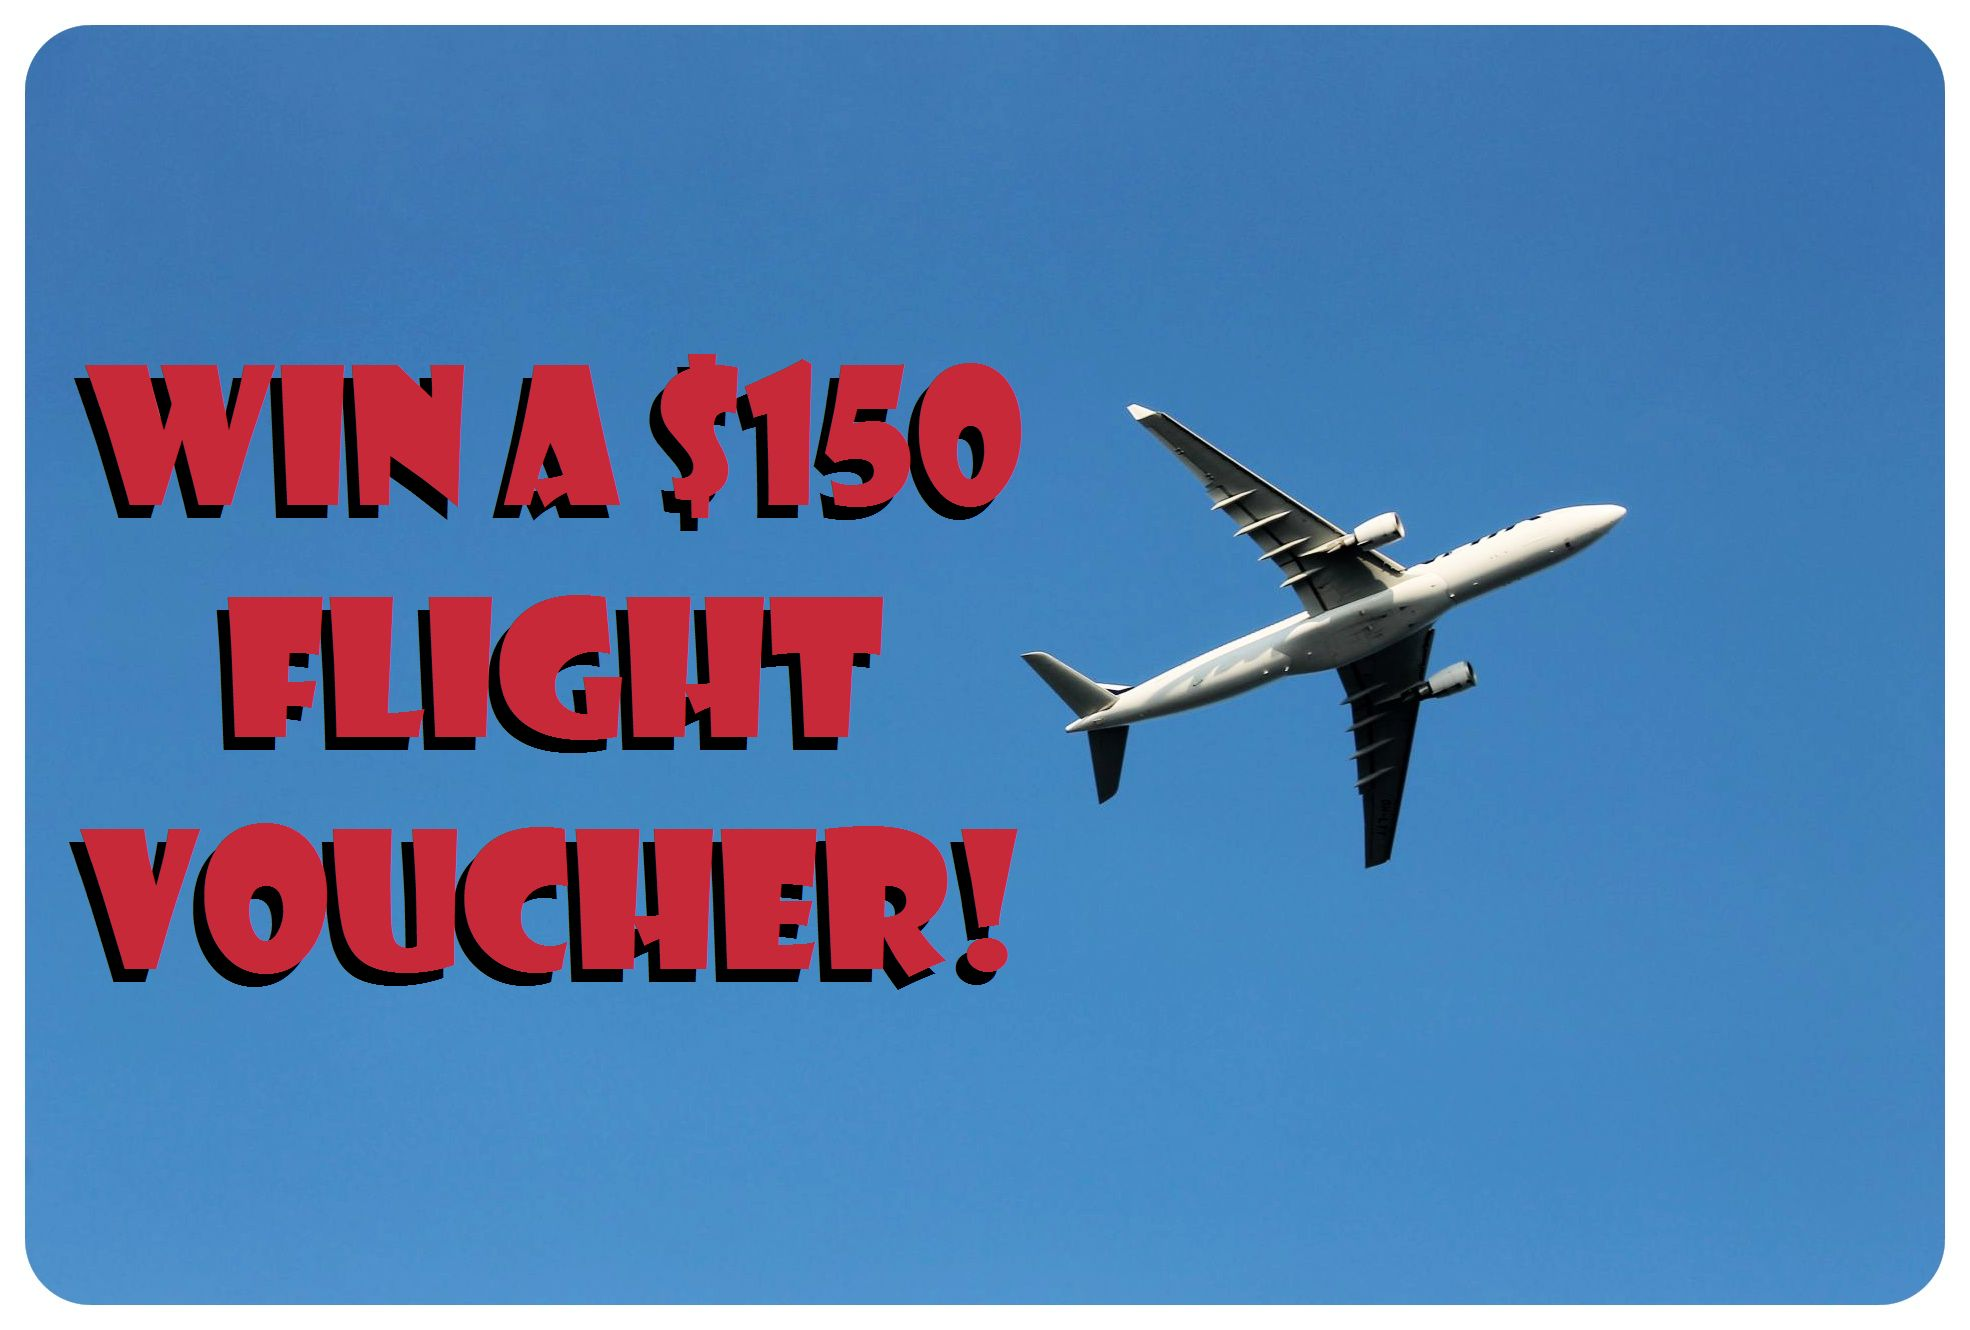 flight voucher